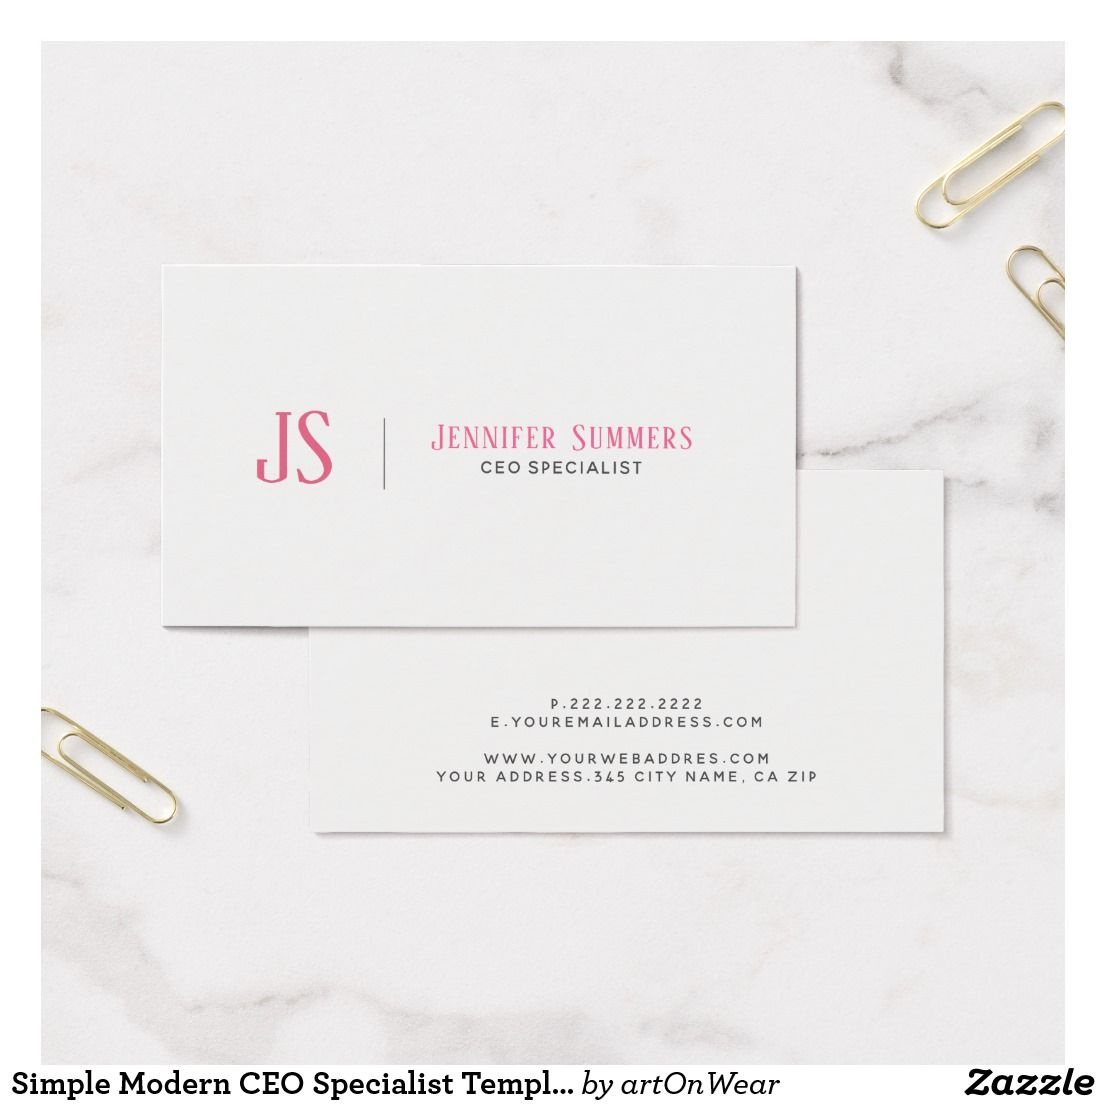 Simple Modern CEO Specialist Template Business Card